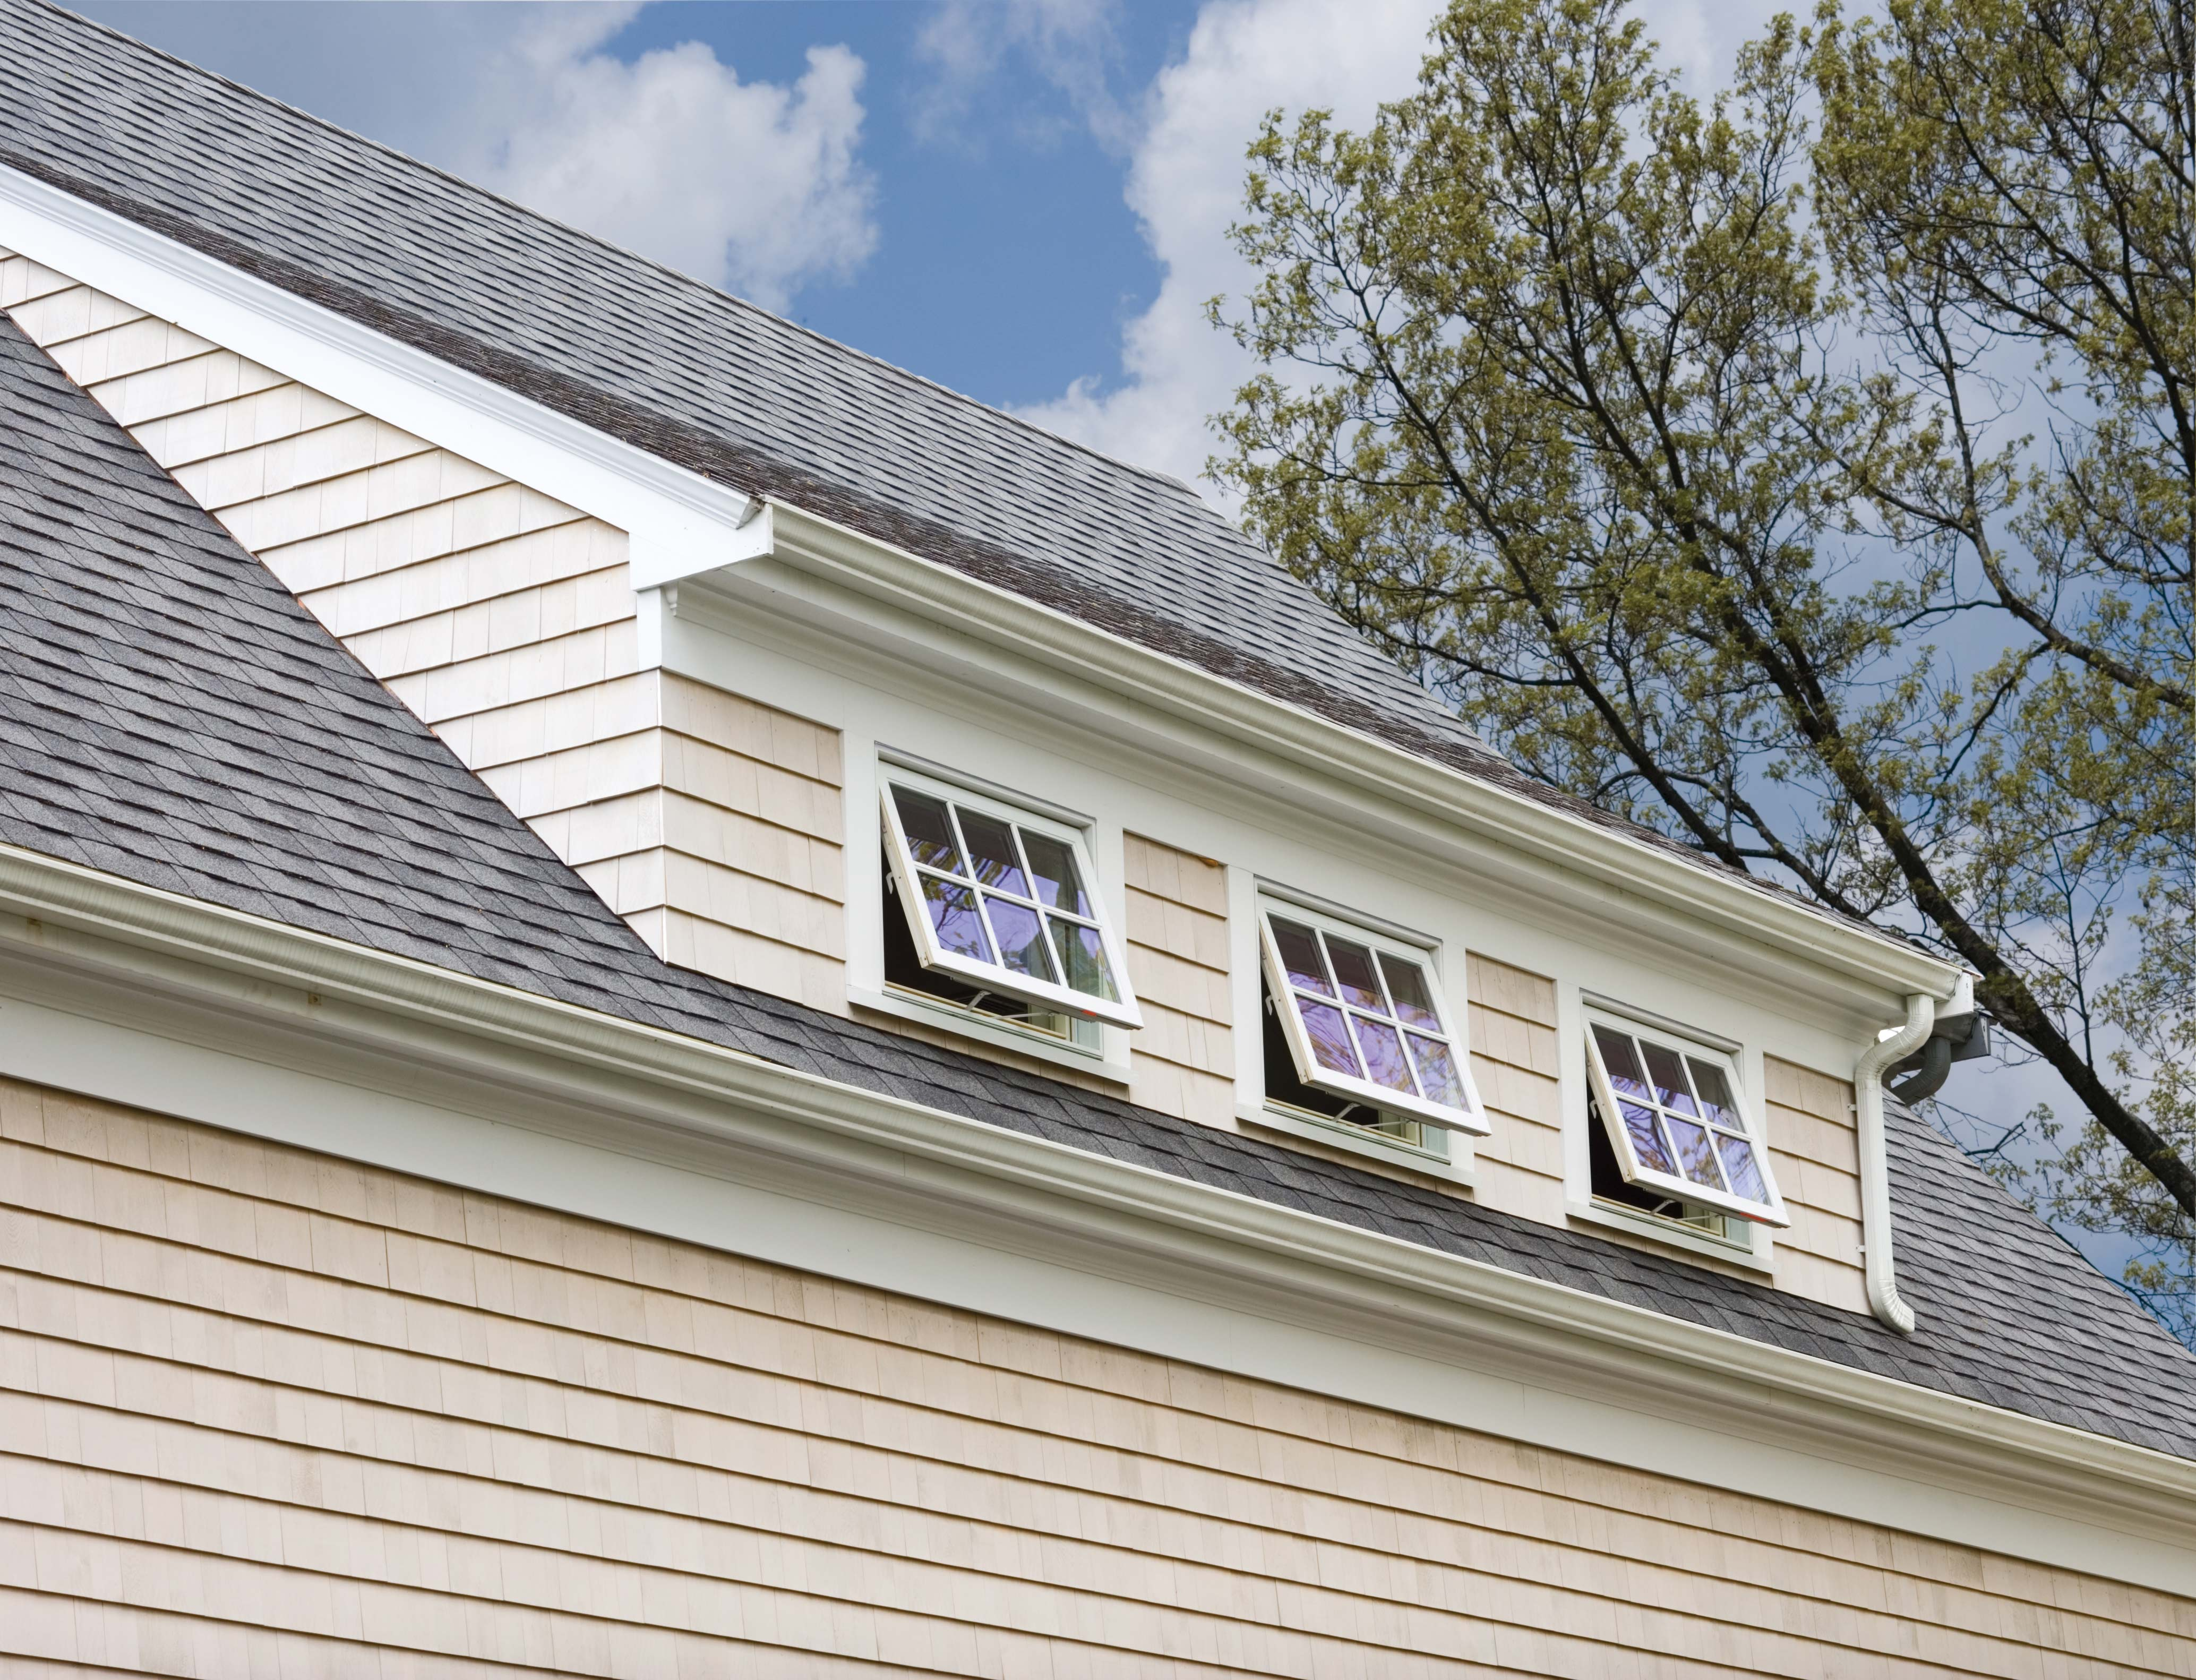 Outside shot of three open awning windows on a sloped roof.